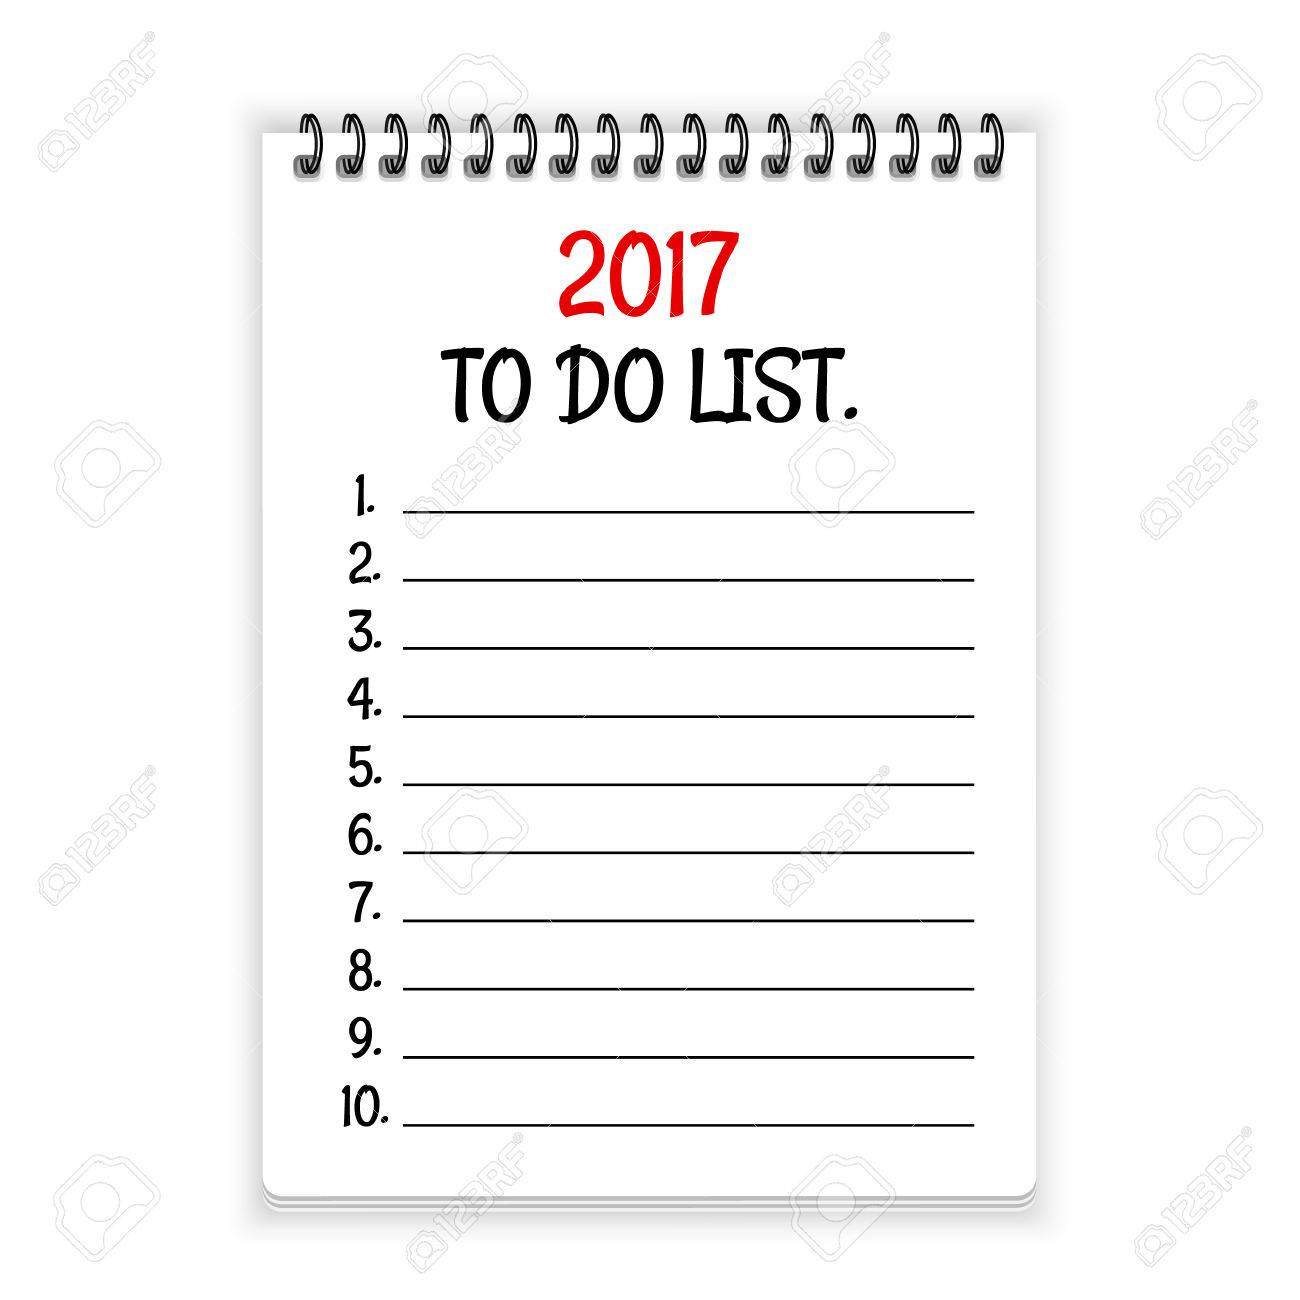 2017 to do list. open spiral notebook paper background royalty free